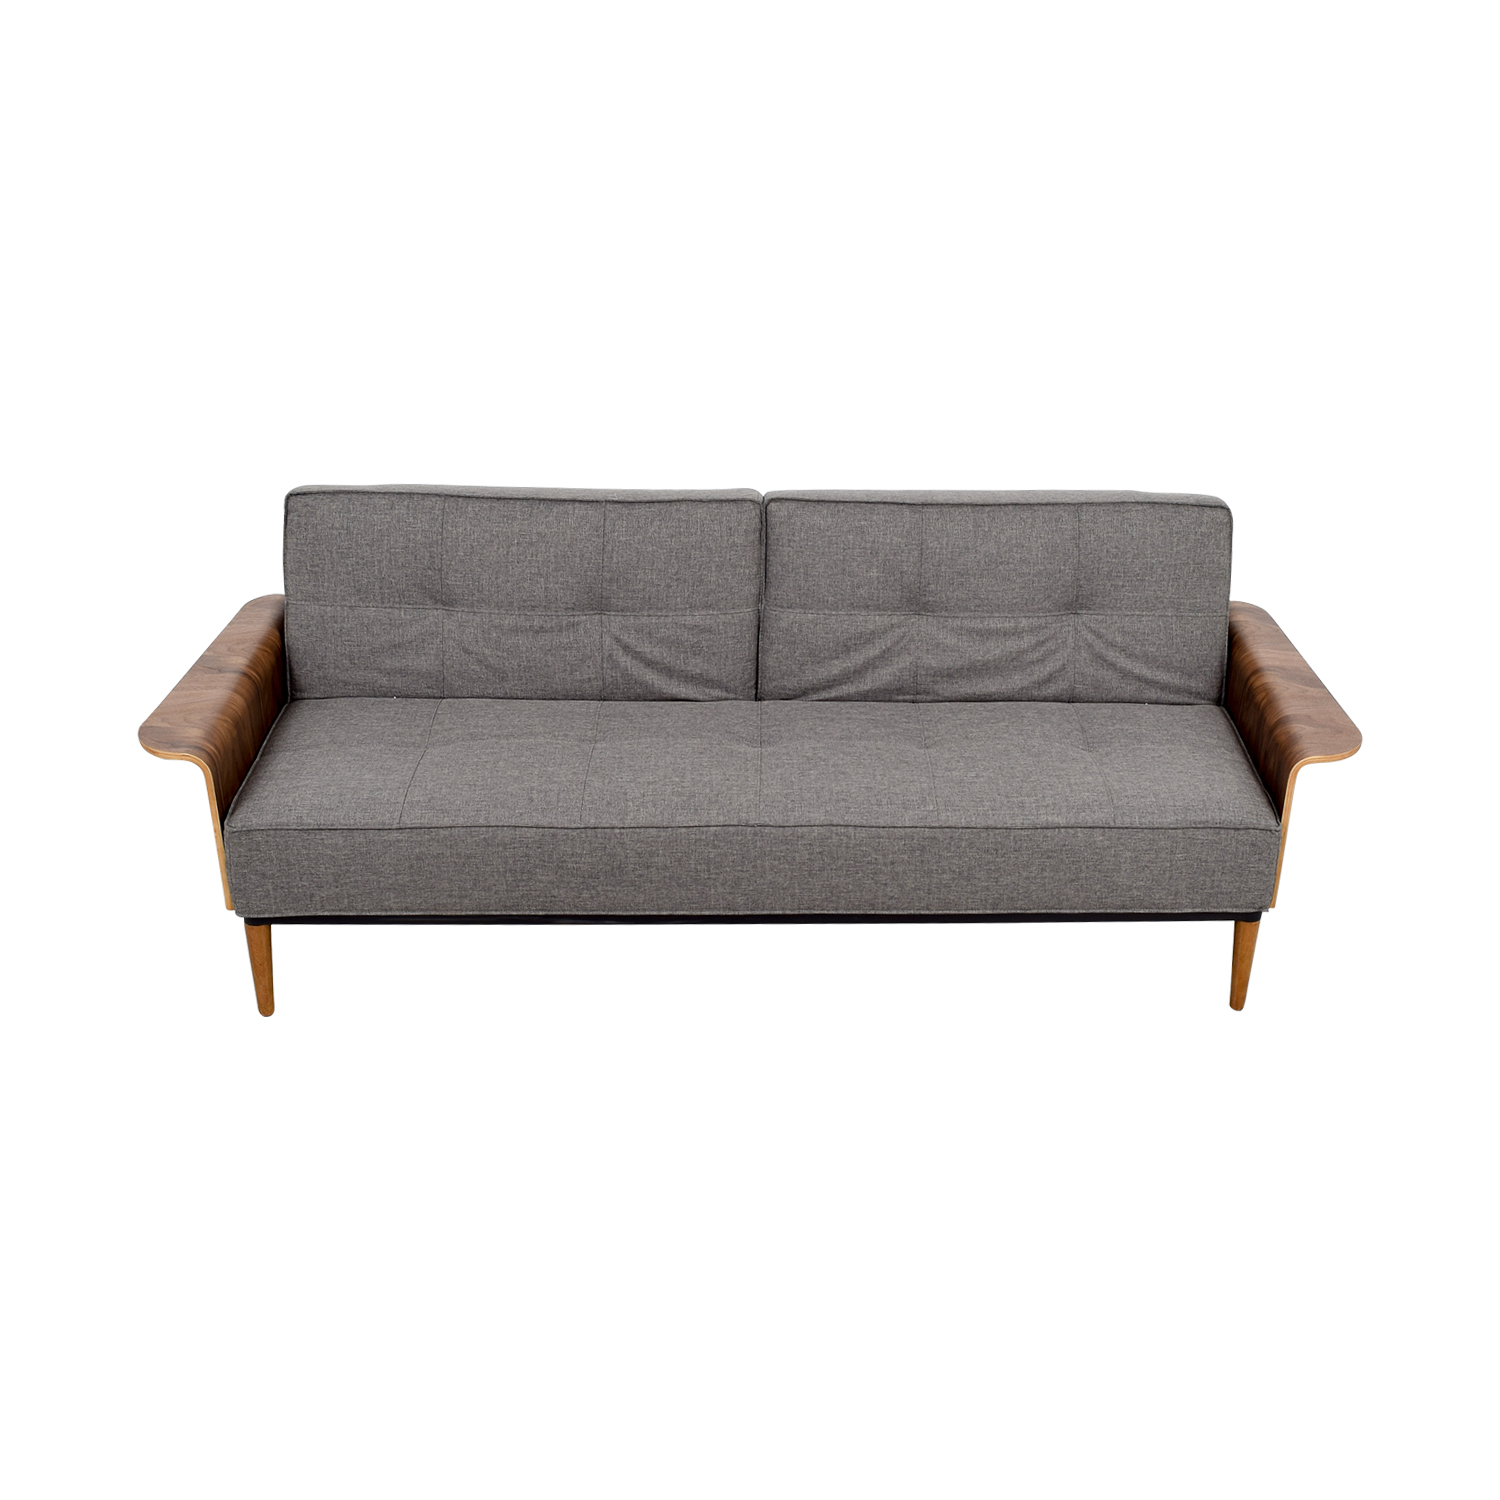 sofas under 500 italia chesterfield sofa restoration hardware 40 sectional for 2018